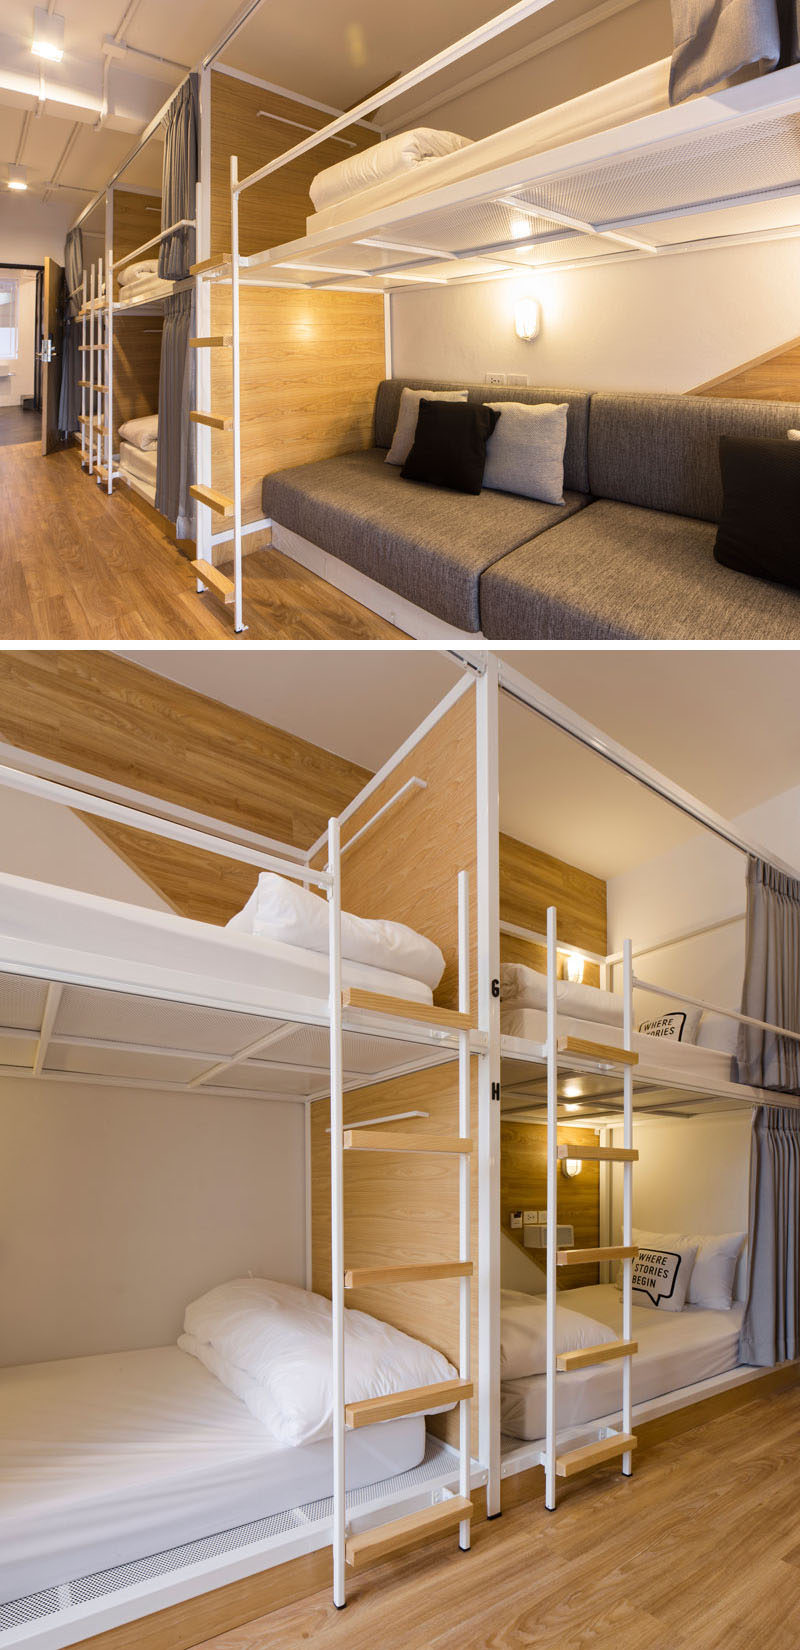 In this modern Bangkok hostel, the dormitory rooms have been set up with bunk beds, each with individual privacy curtains.